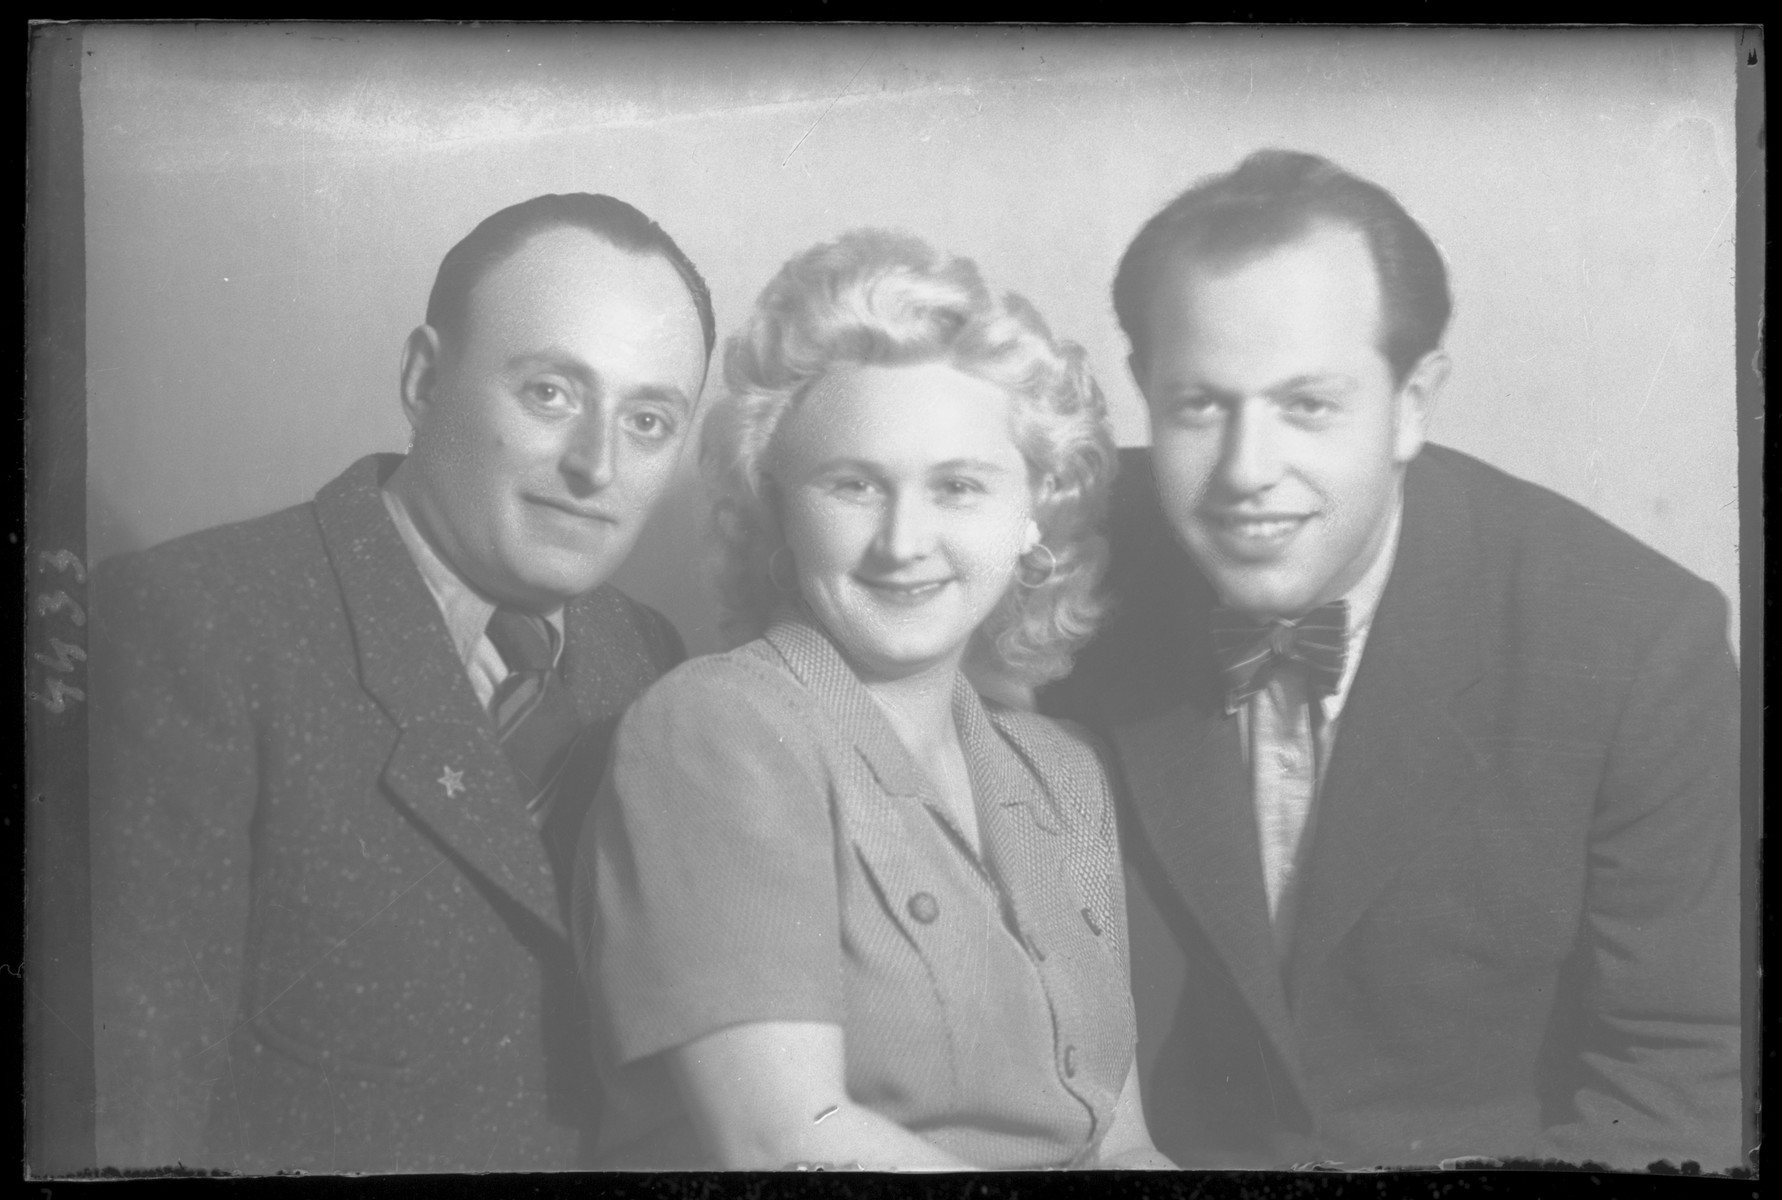 Studio portrait of Artur Grunberger and two other people.